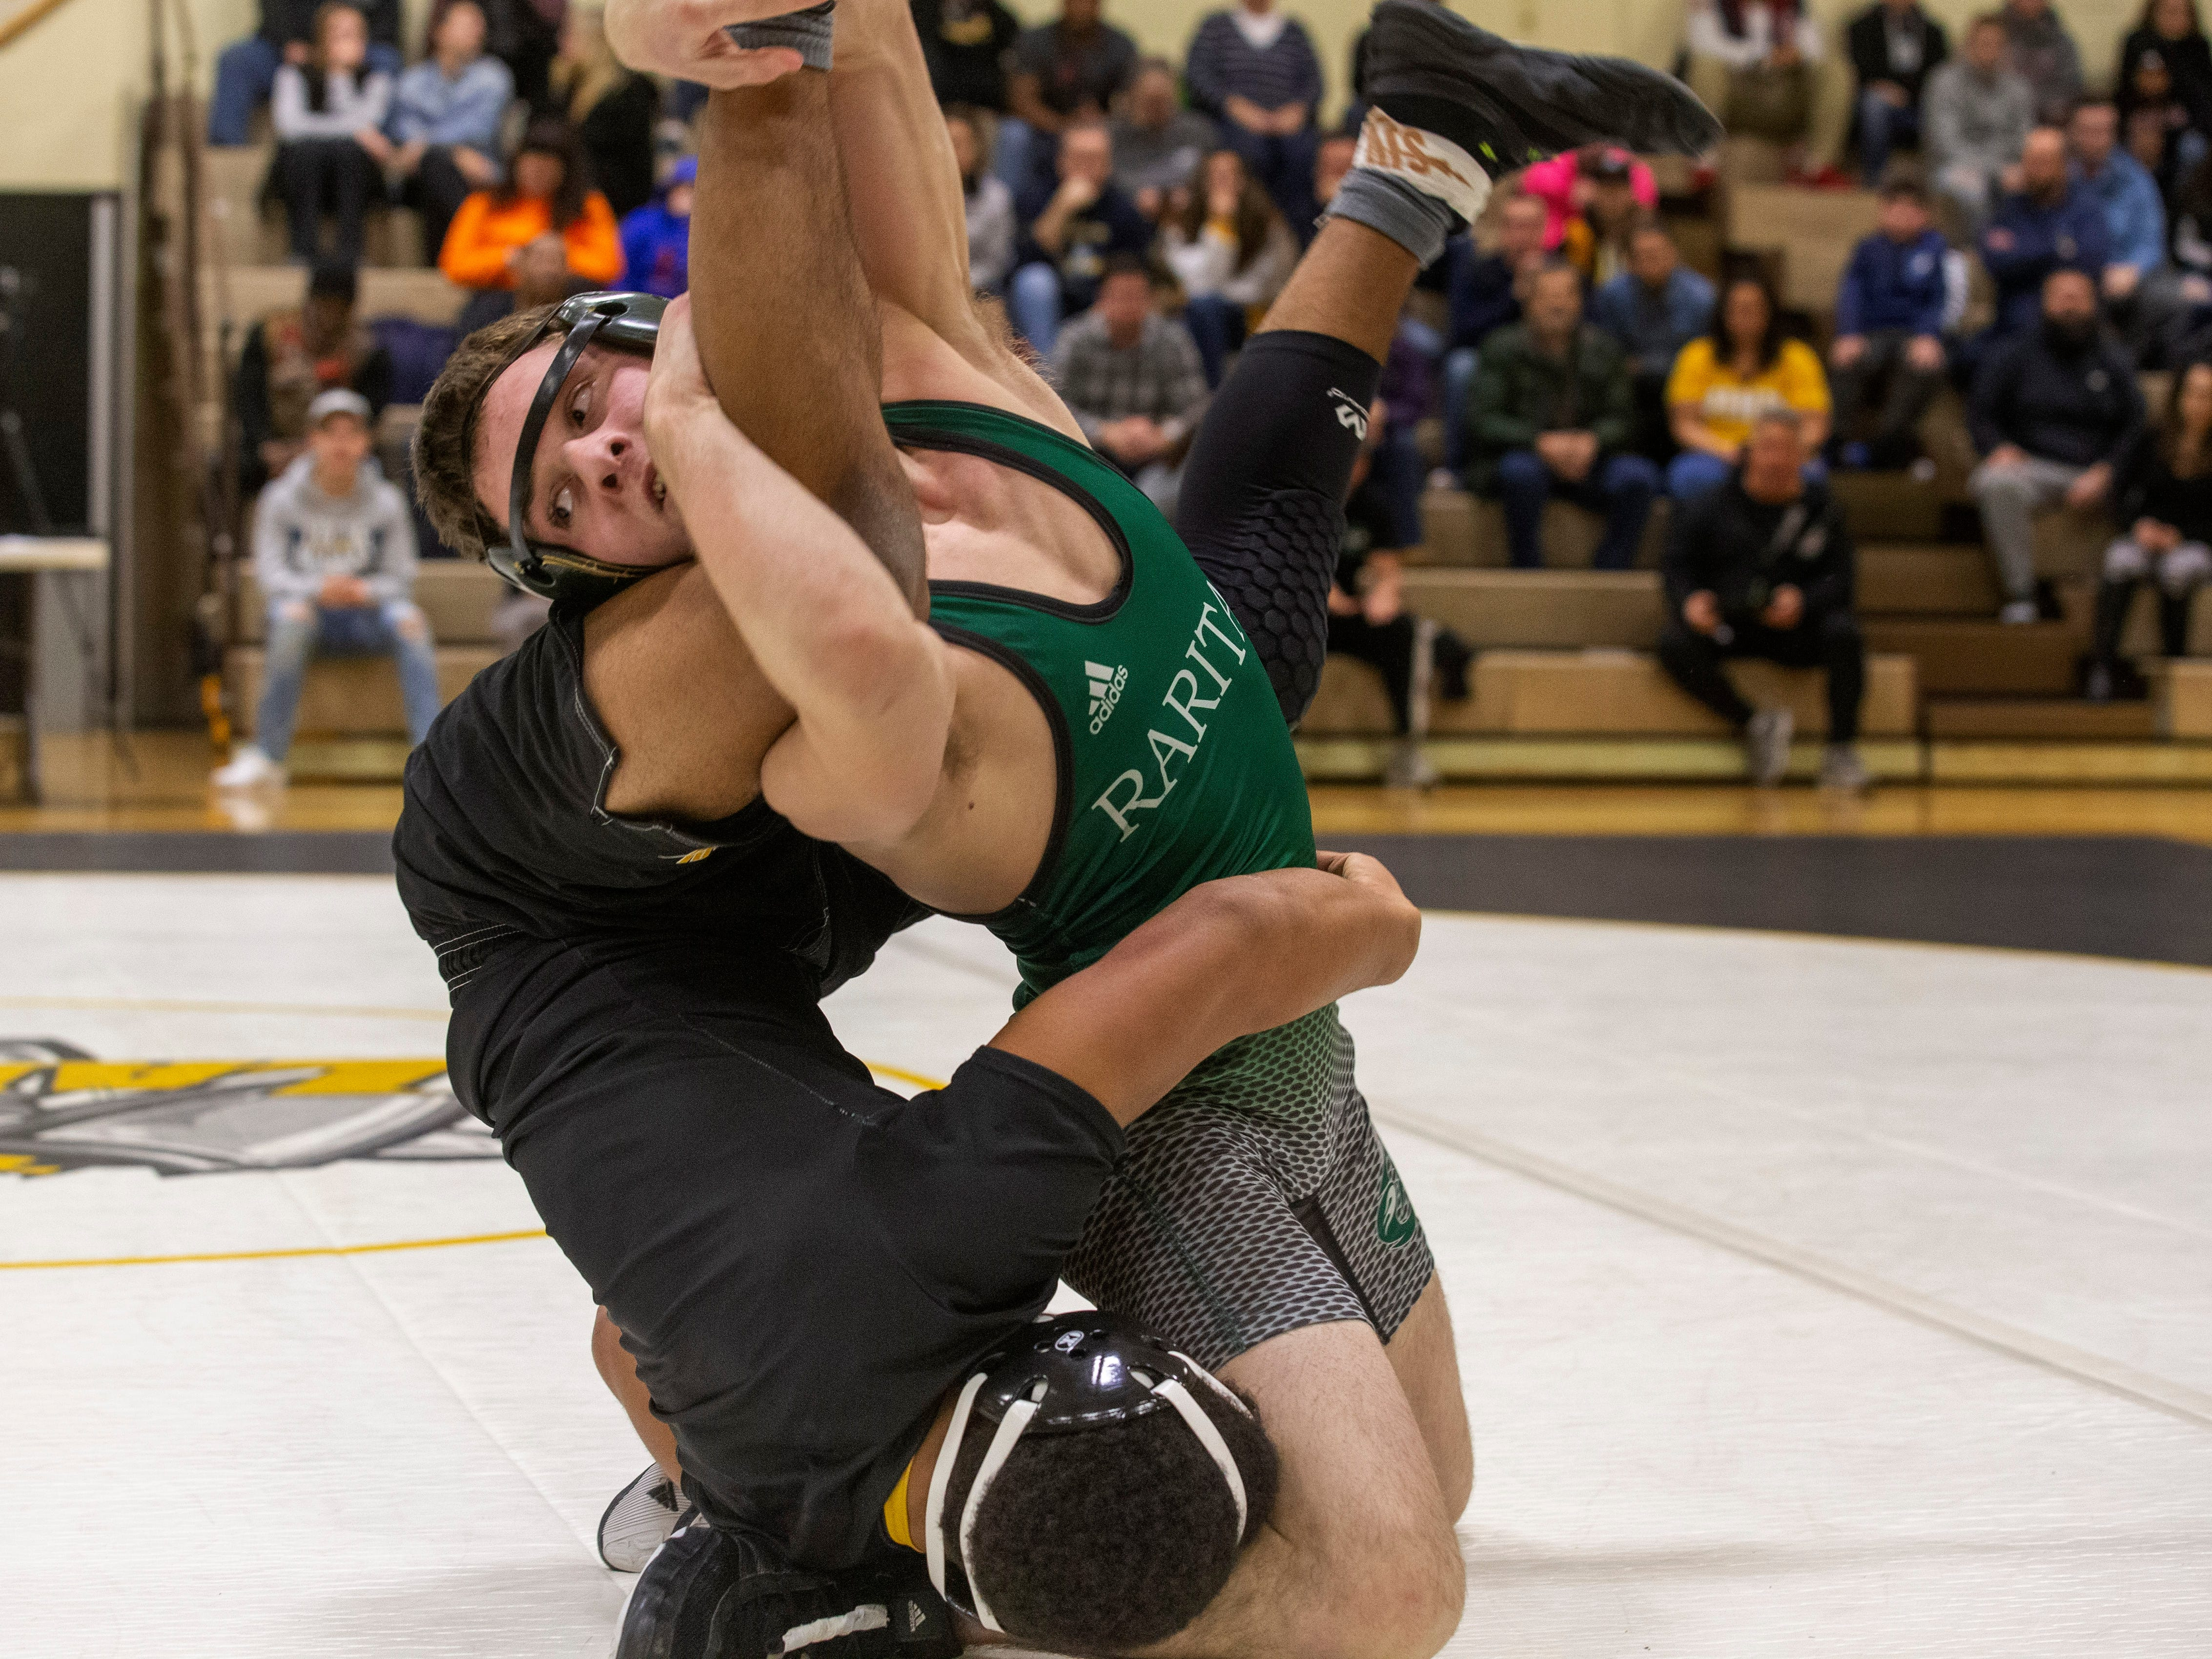 Raritan's Cameron Rafalko defeats St. John's Gabe Jones in their 138 lbs. bout. Raritan Wrestling defeats St John Vianney in Holmdel, NJ on January 23, 2019.